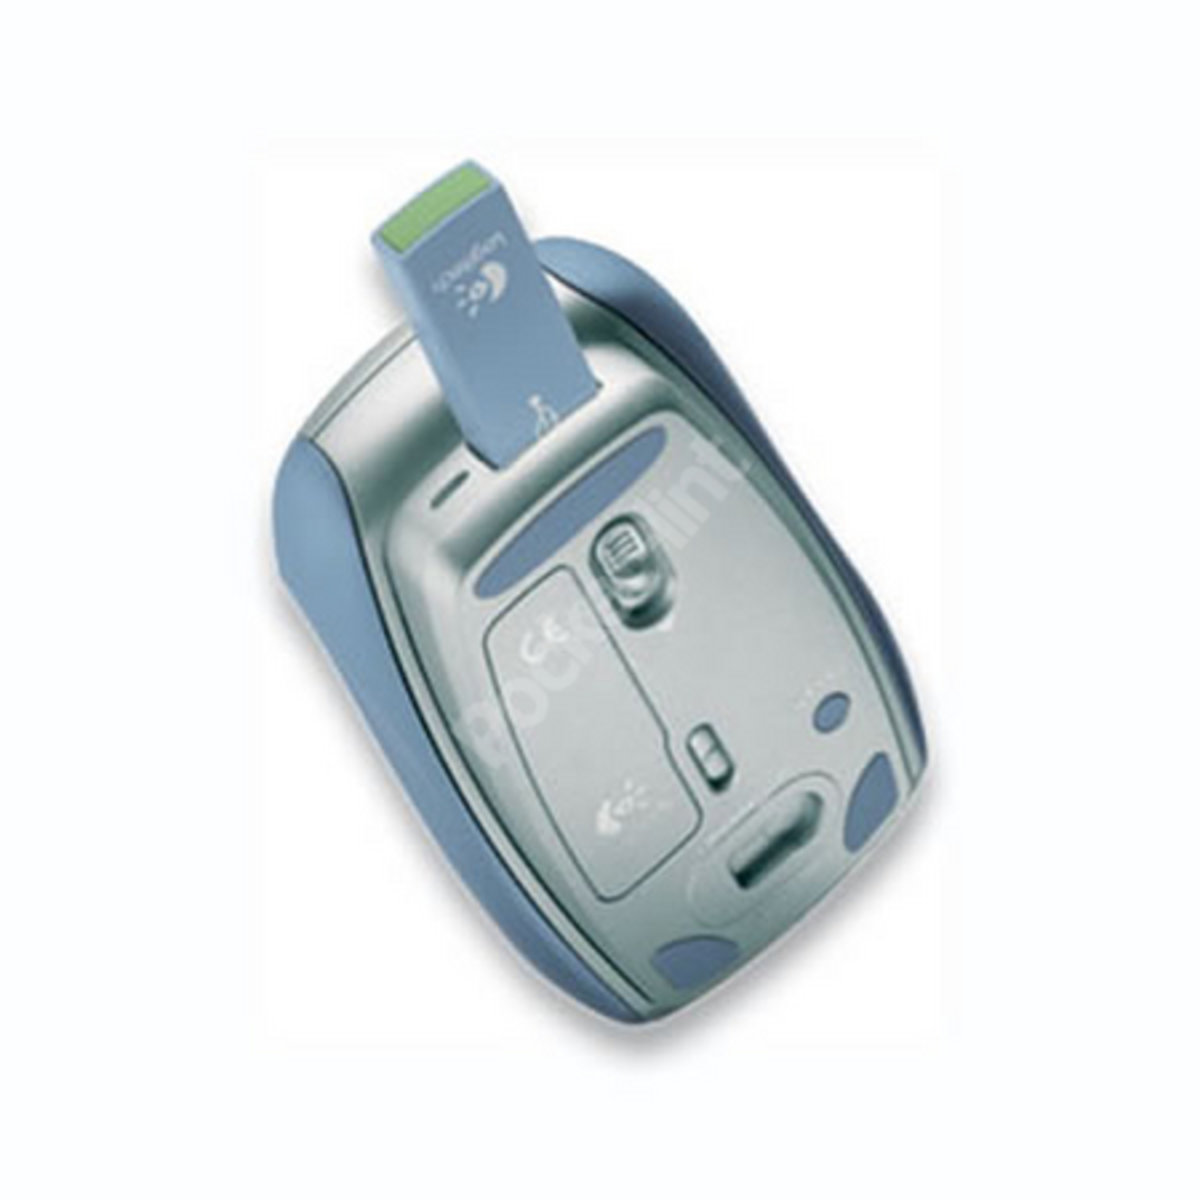 LOGITECH V500 DRIVERS DOWNLOAD